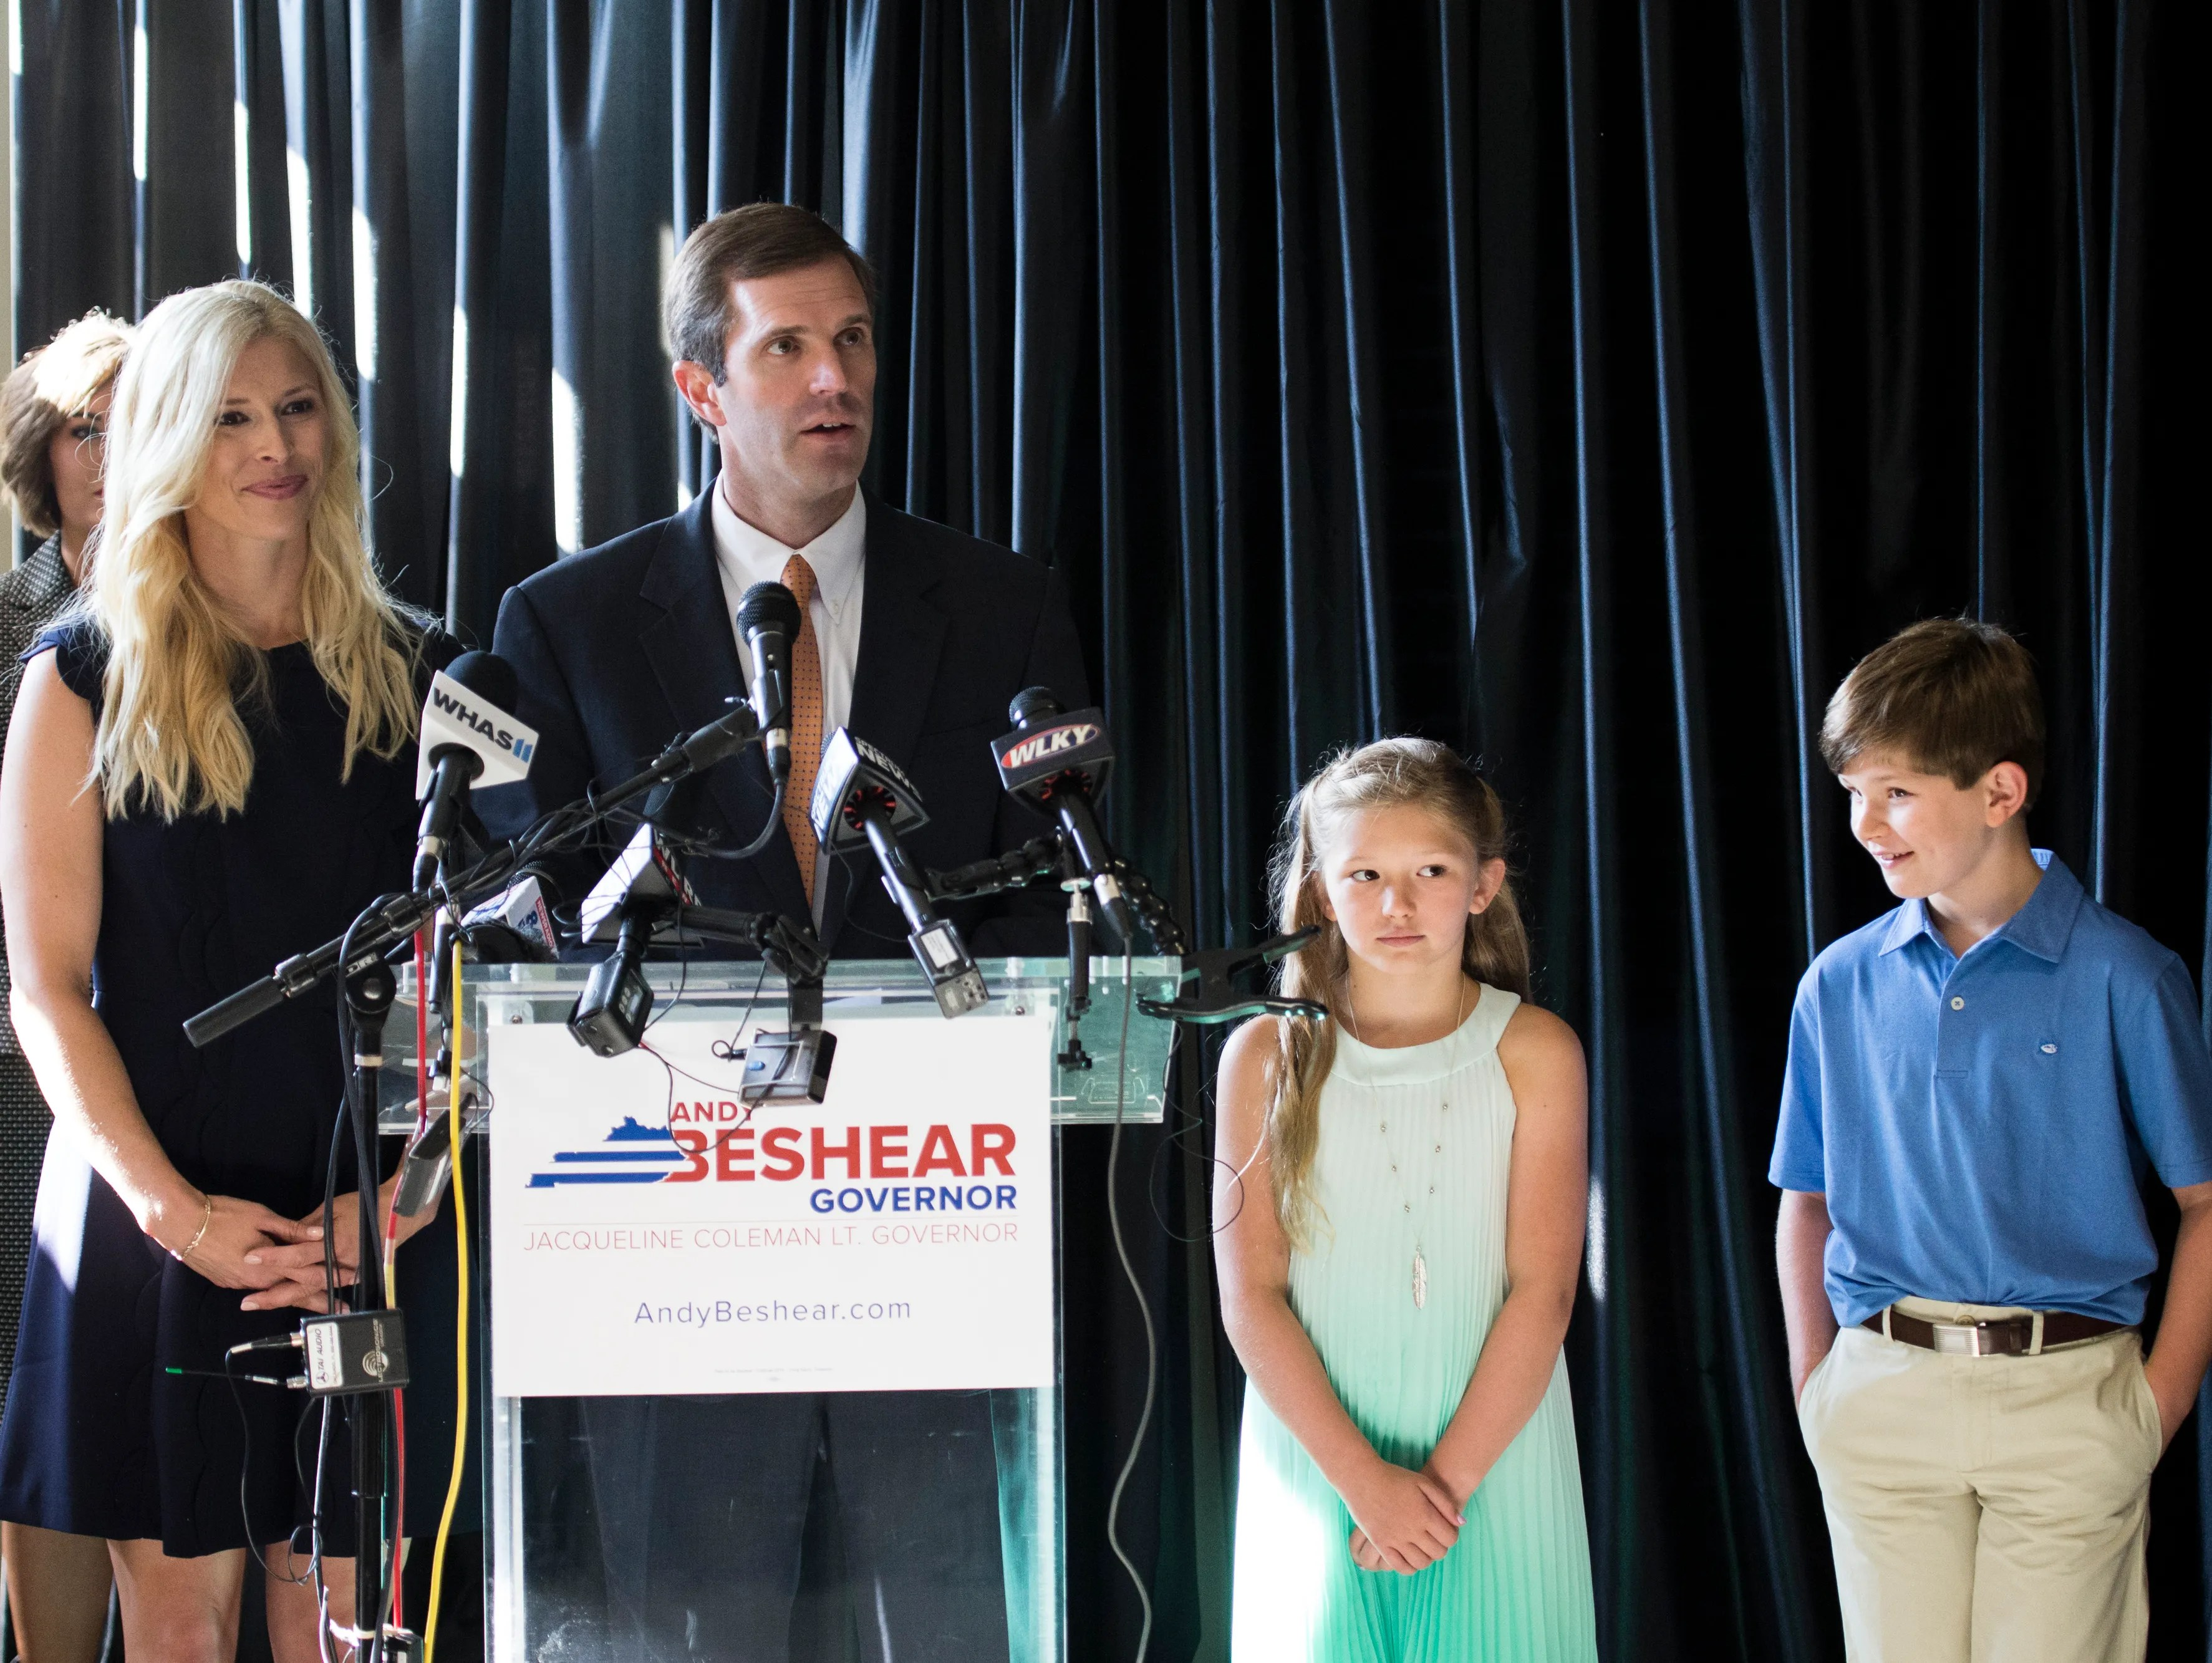 Andy Beshear To Run For Kentucky Governor 2019